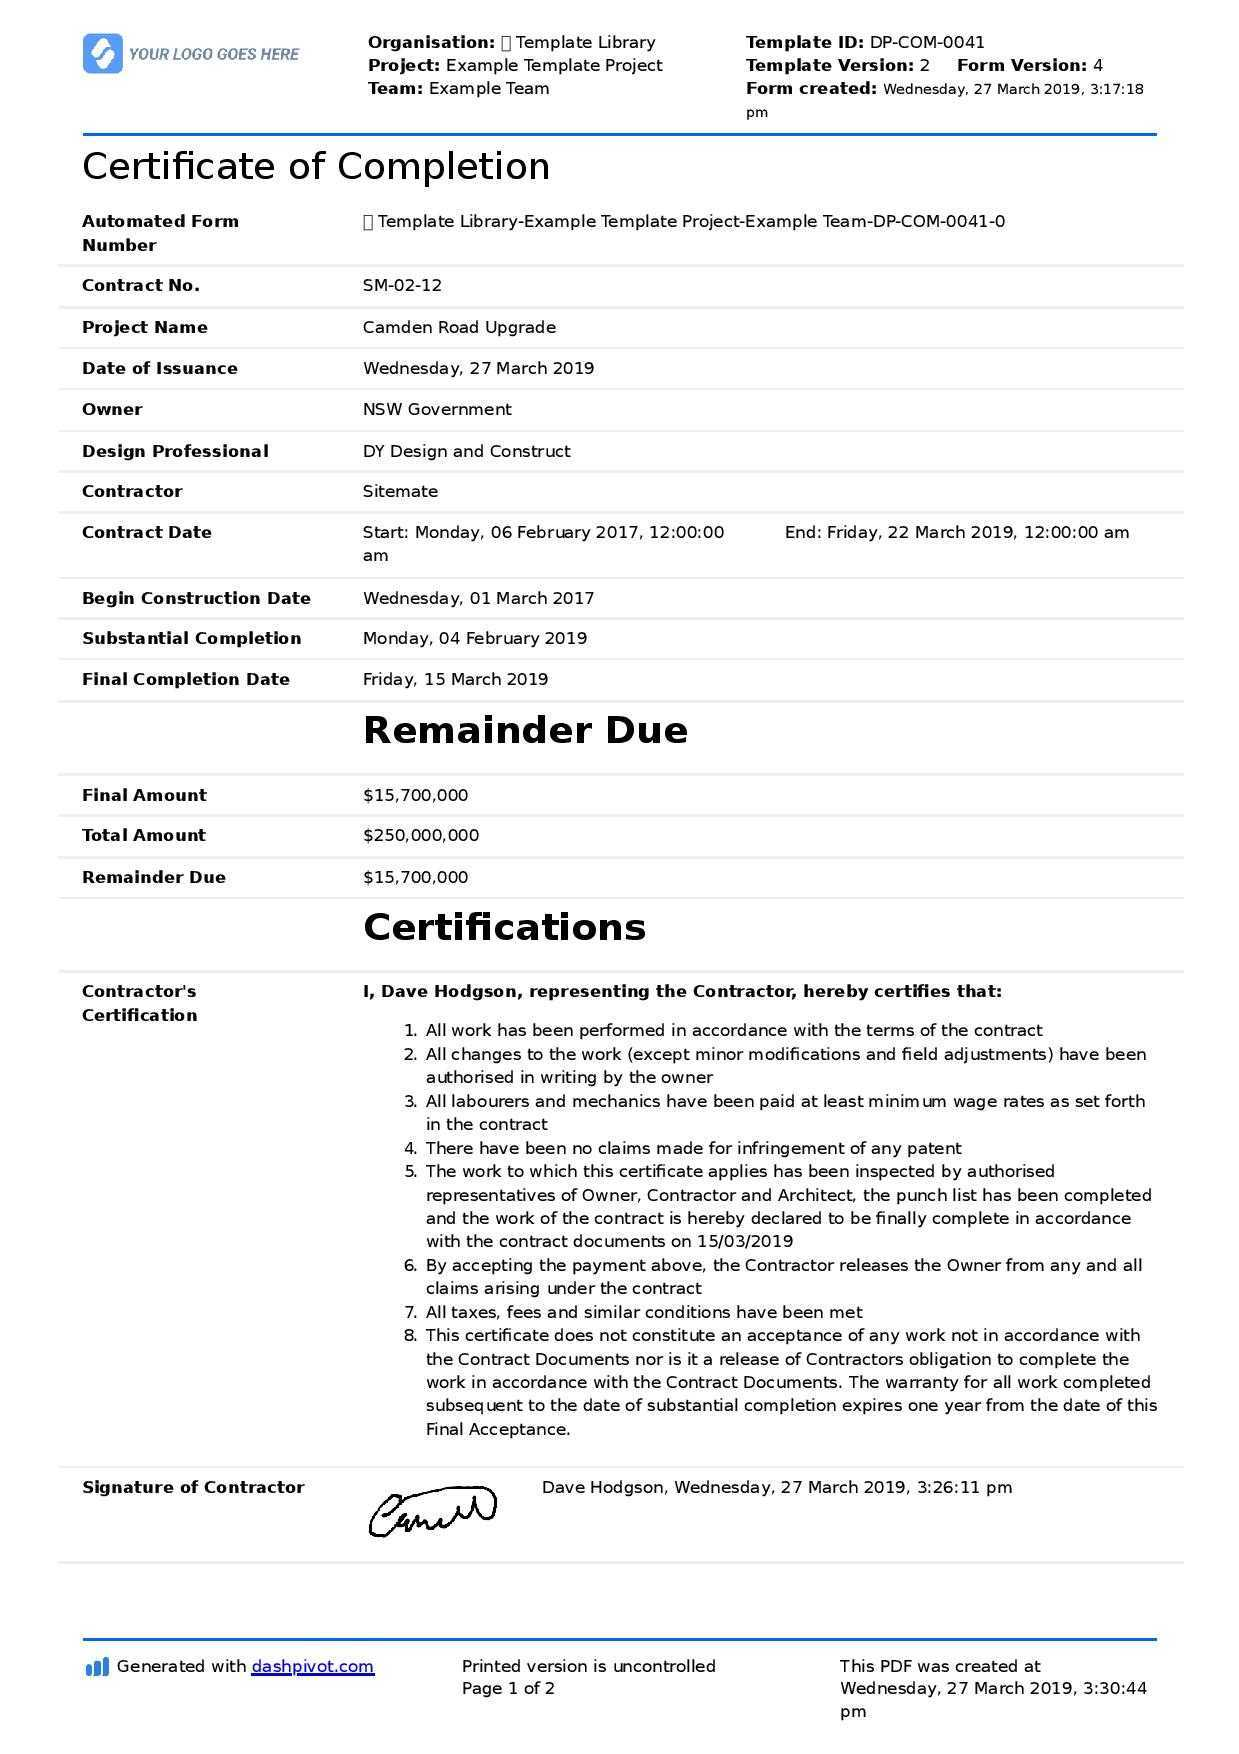 040 Free Construction Contract Agreement Template Example Pertaining To Certificate Of Completion Construction Templates